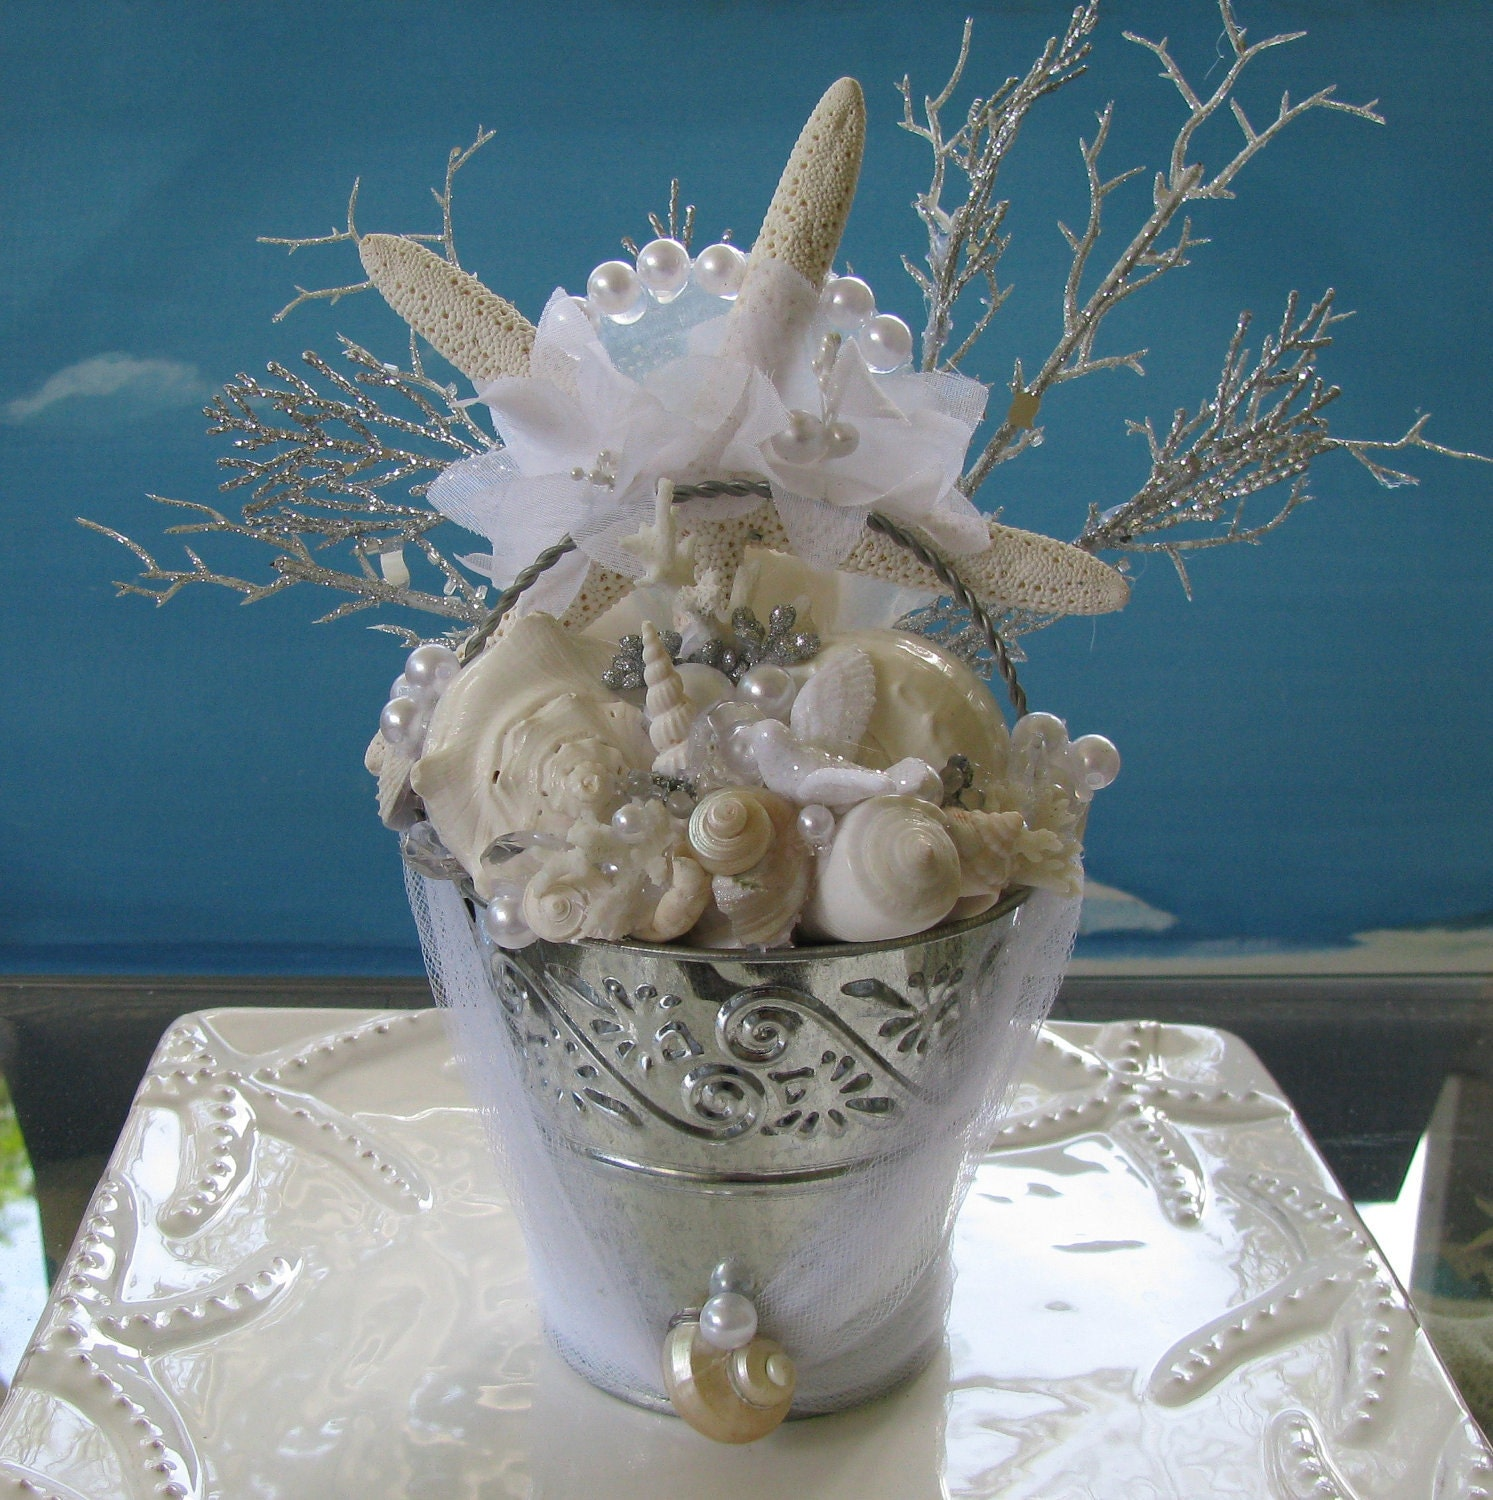 Beach Wedding Centerpieces Ideas: ~Seashell Wedding Cake Topper~Seashell Wedding Decor